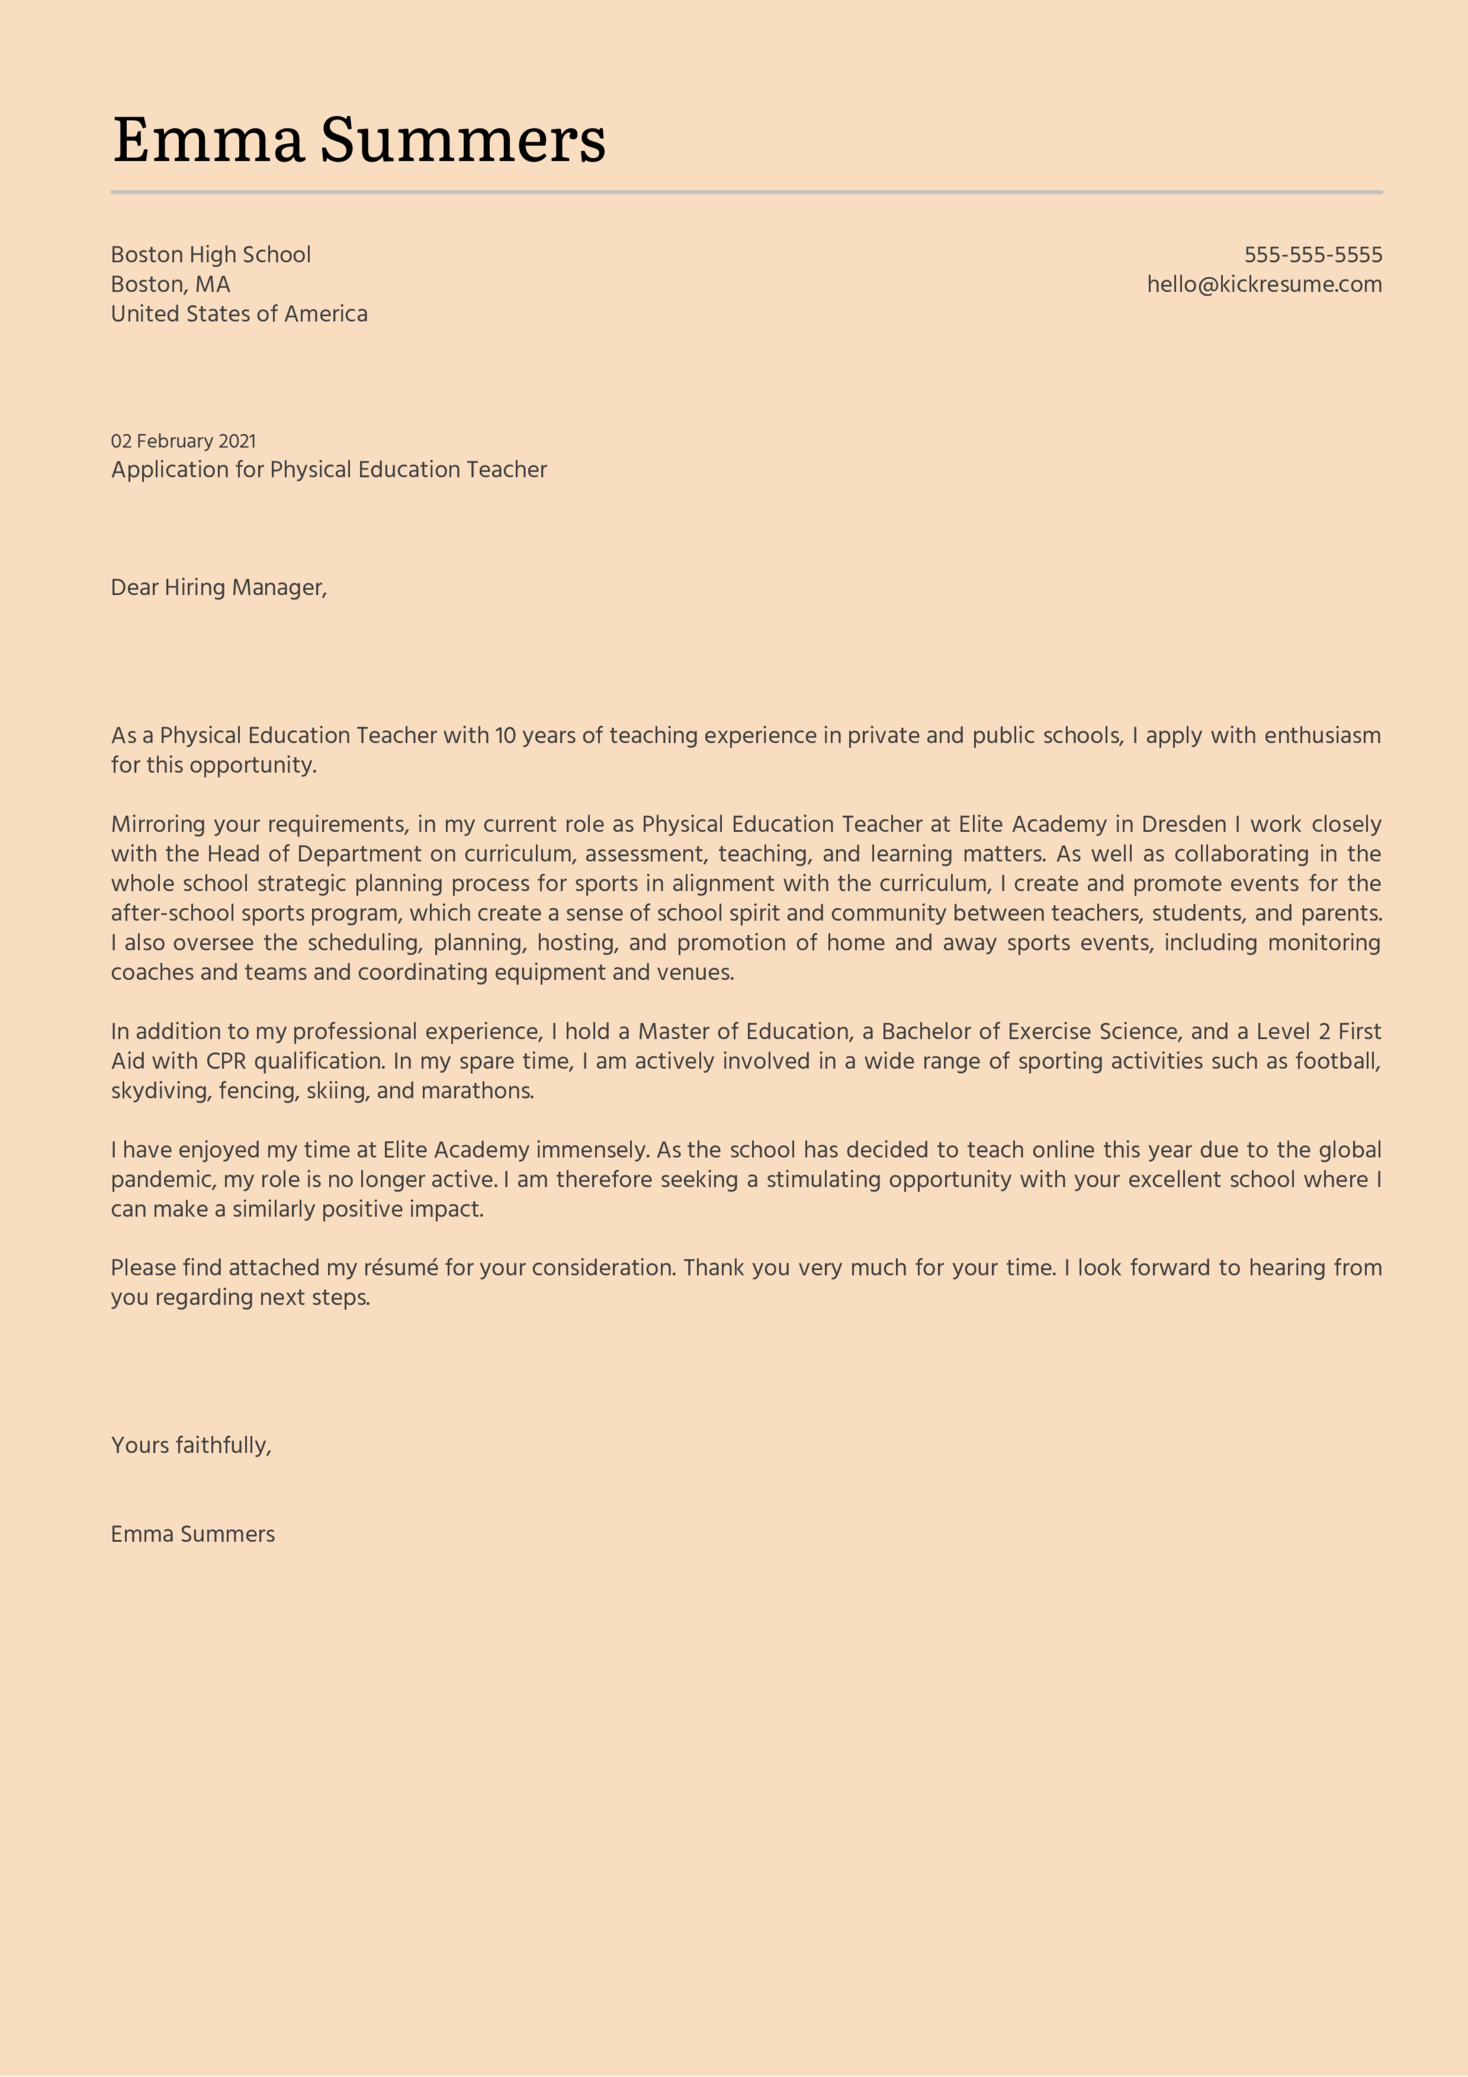 Physical Education Teacher Cover Letter Example